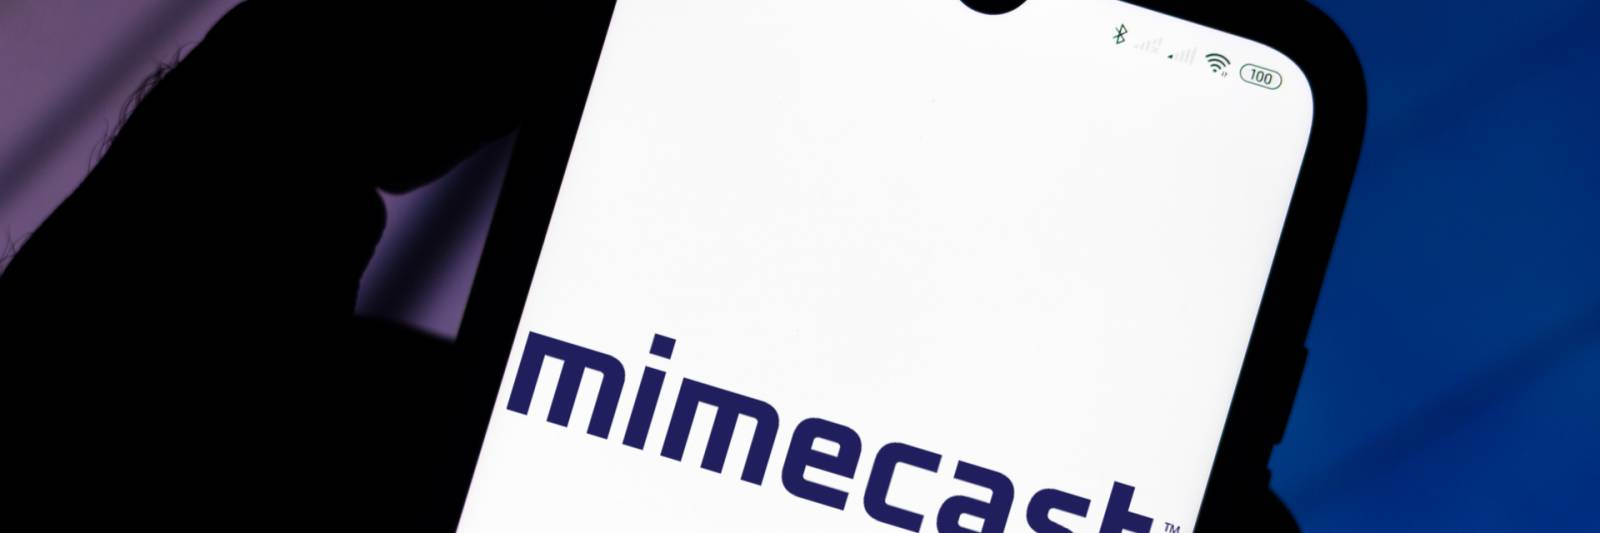 mimecast dumps solarwinds after hackers breached its network